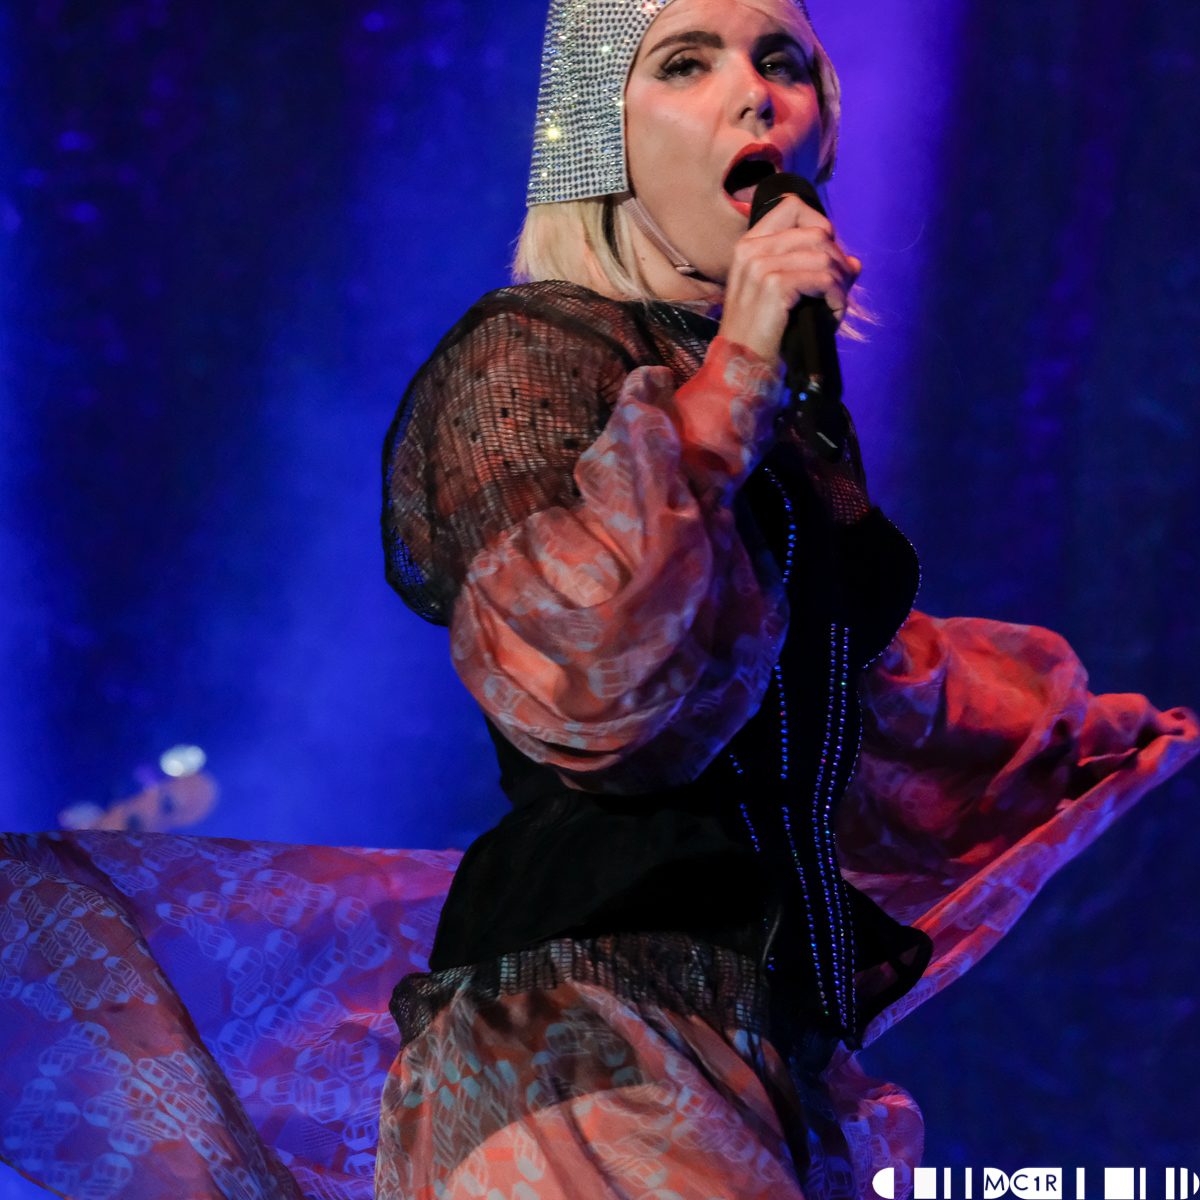 Paloma Faith at Belladrum 2018 16 - Paloma Faith, Friday Belladrum 2018 - IMAGES